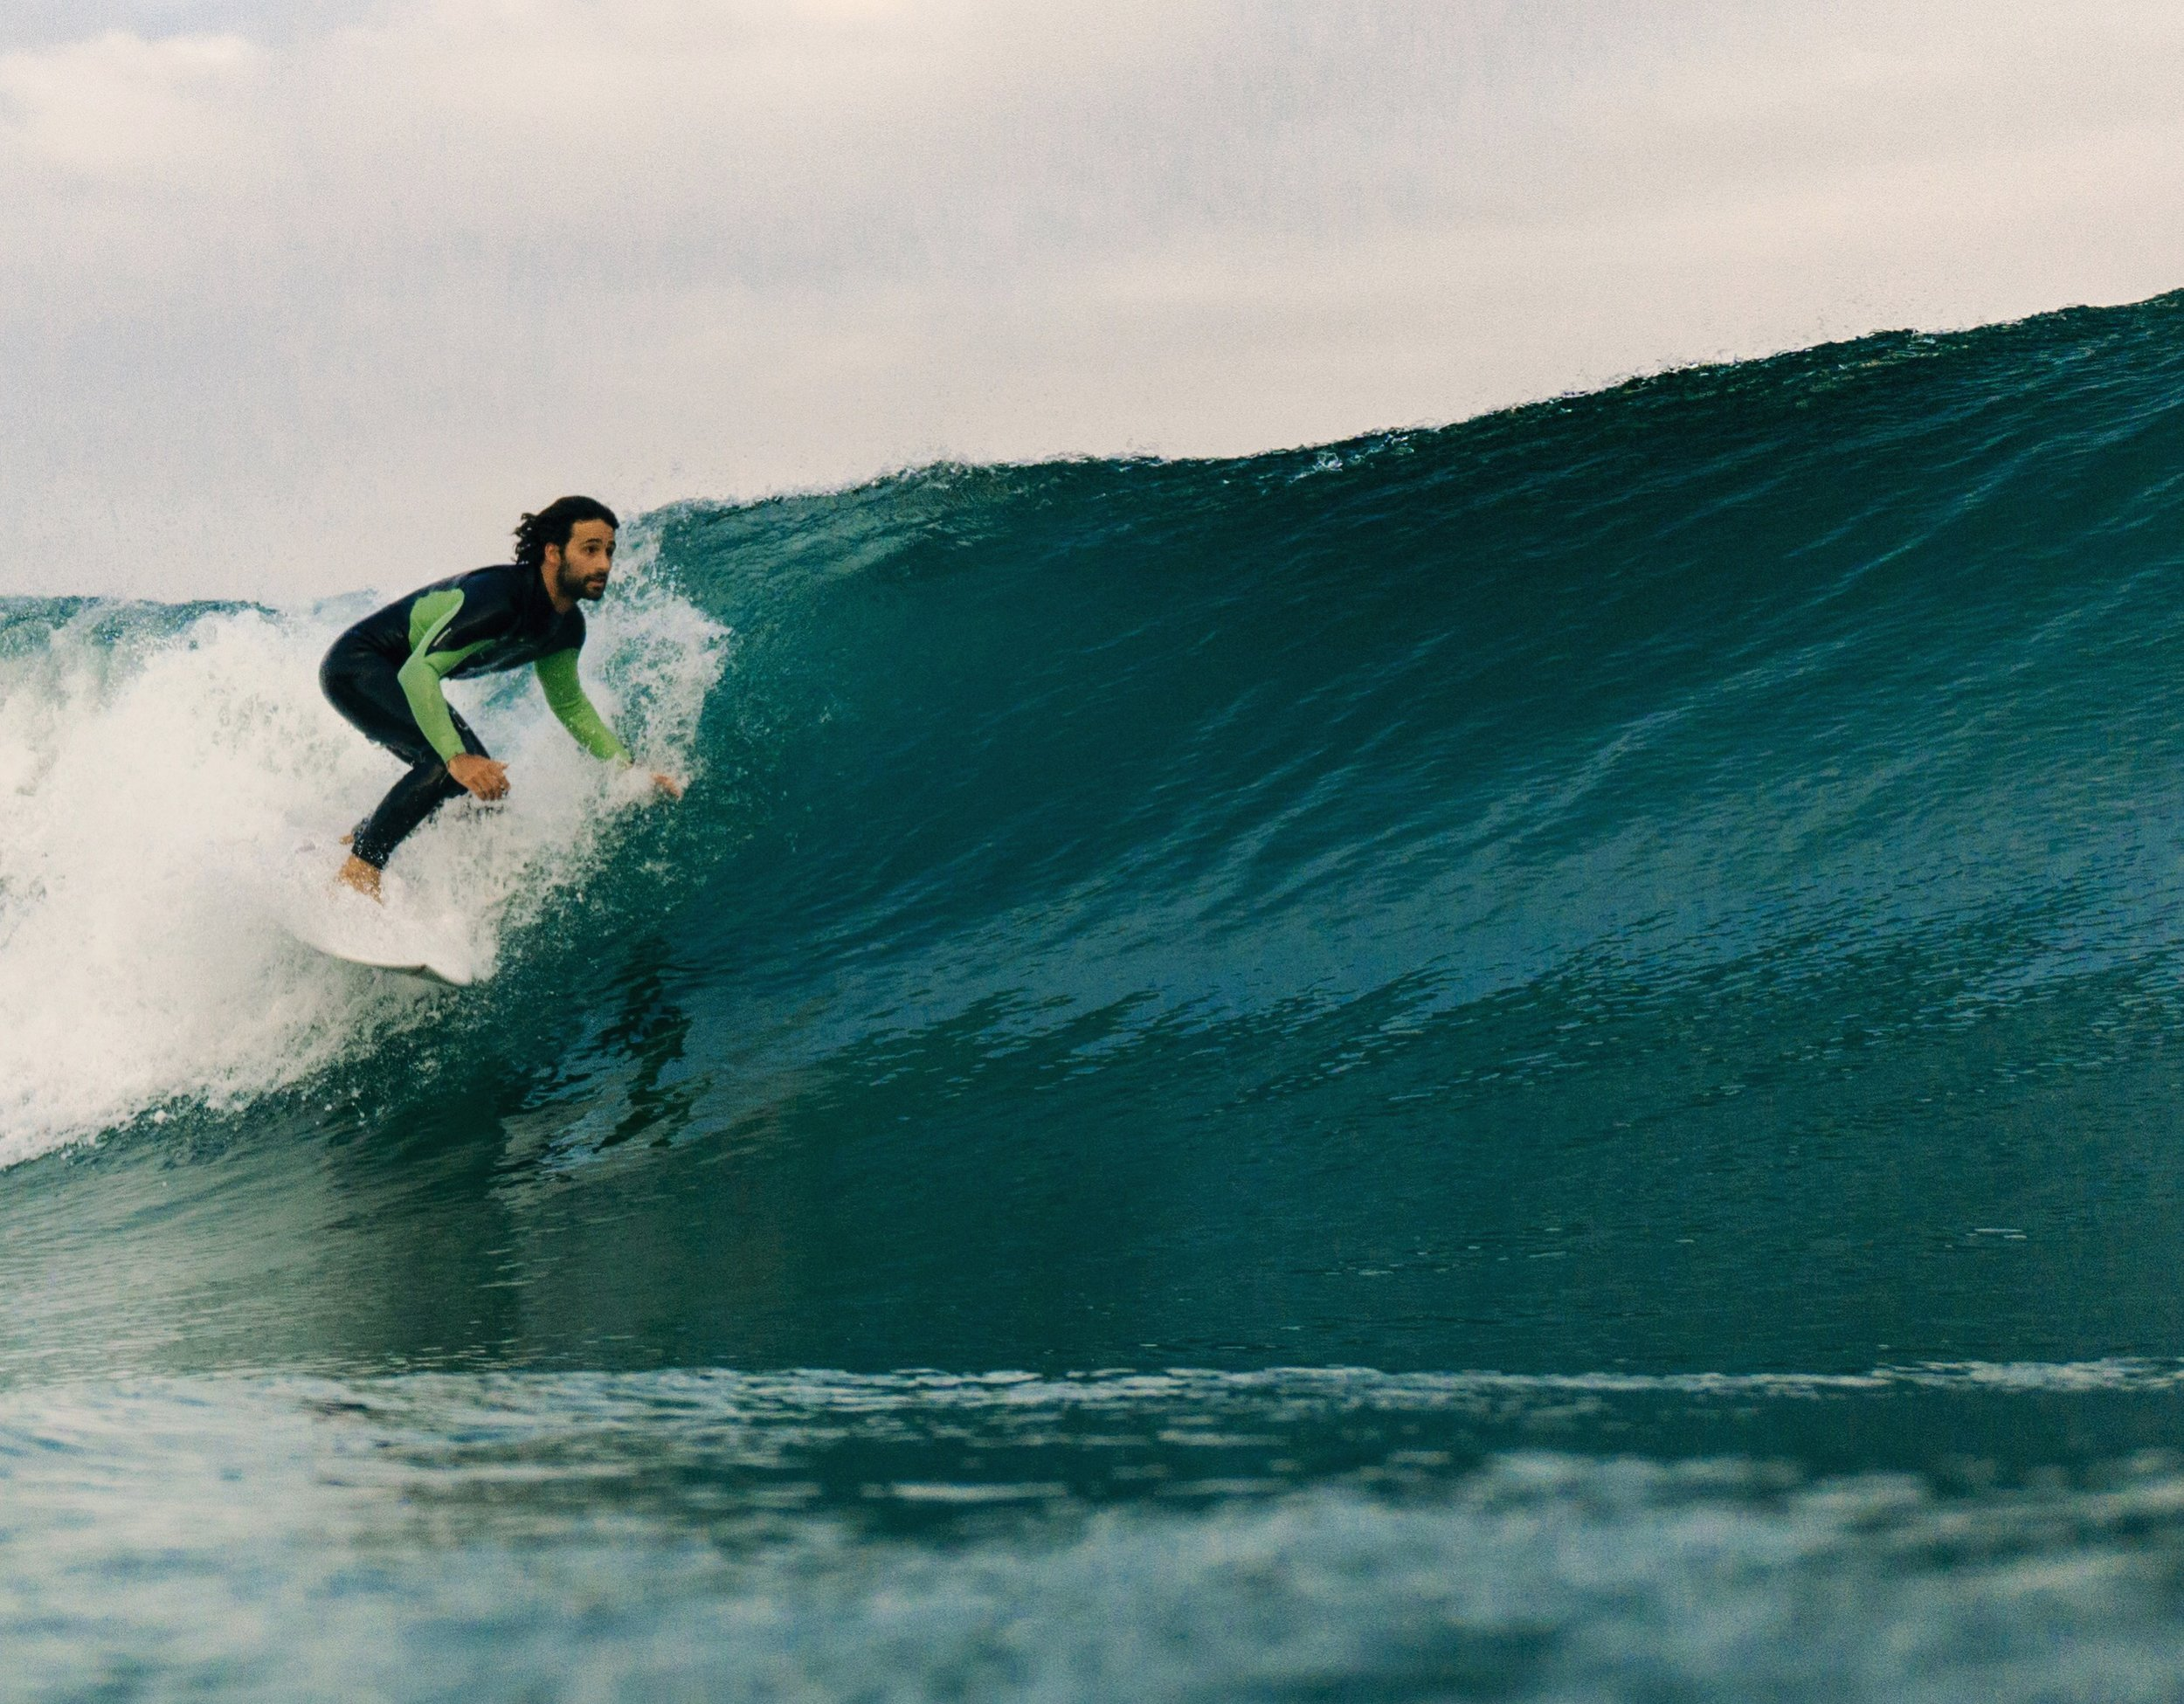 Surfing Time! - Classes for beginners and coaching for more advance surfers.